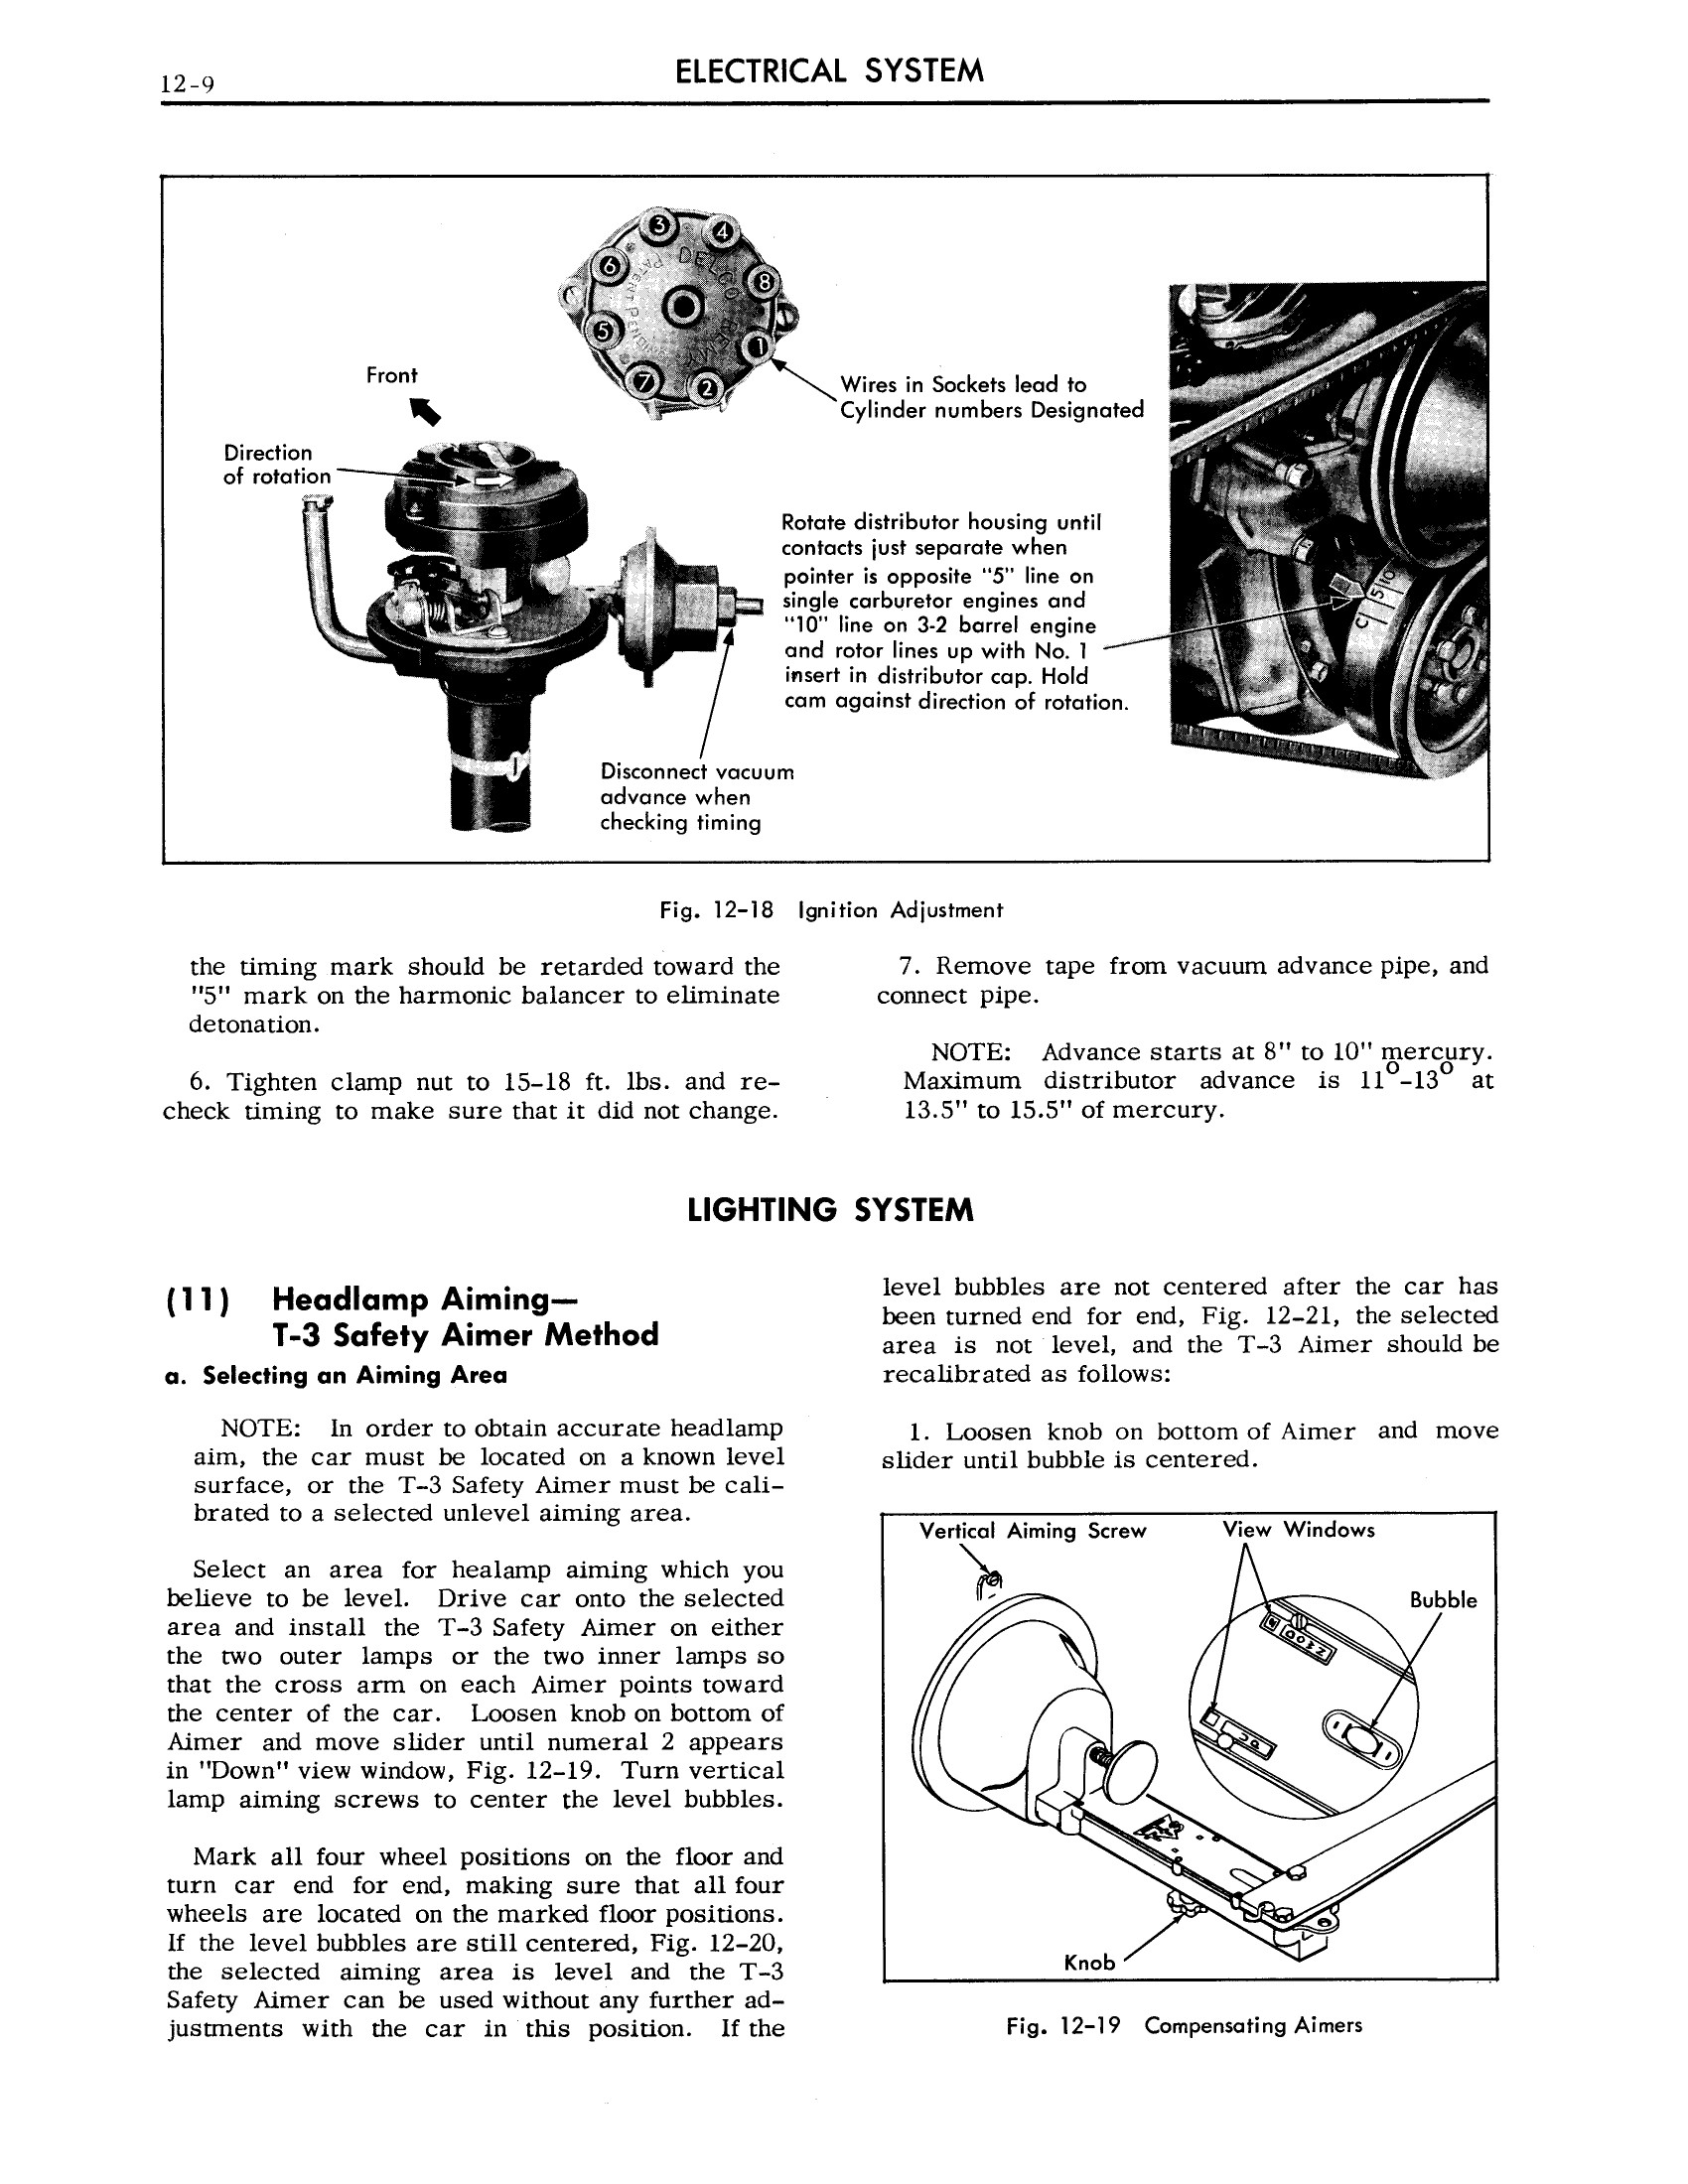 1958 Cadillac Shop Manual- Electrical System Page 9 of 23